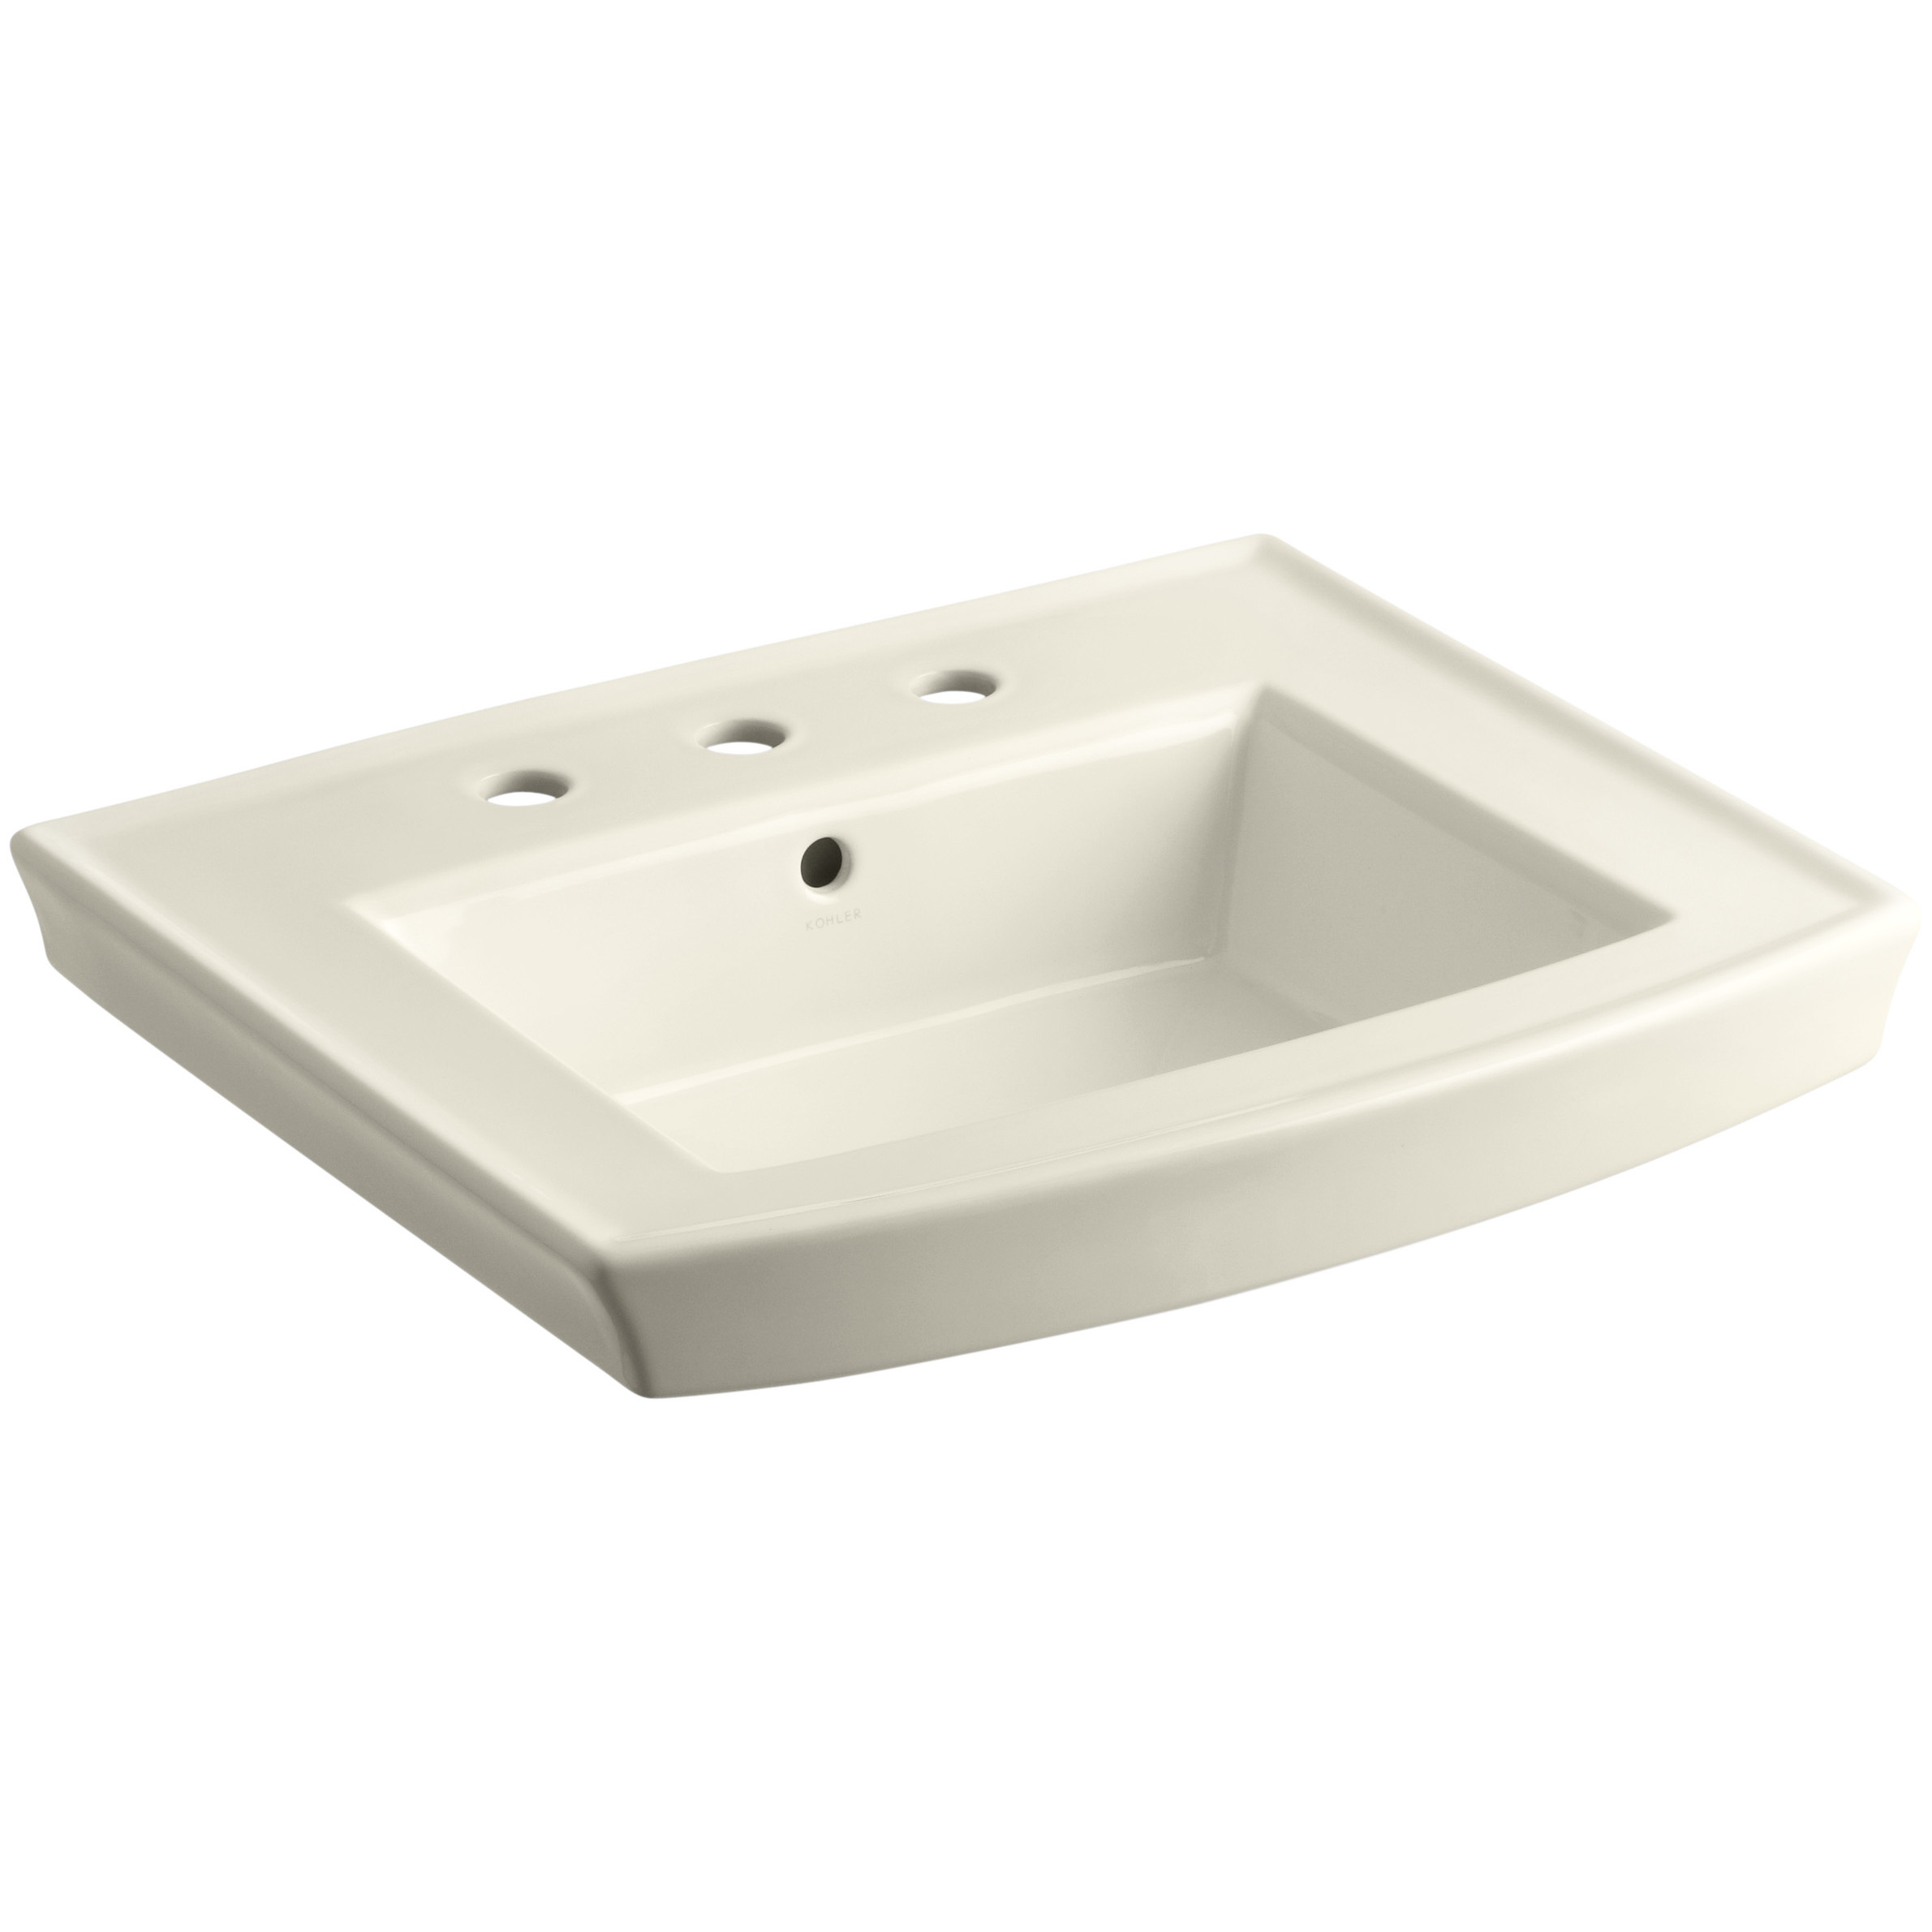 Cool mirabelle sinks with Widespread Faucet Holes for bathroom with mirabelle undermount sink